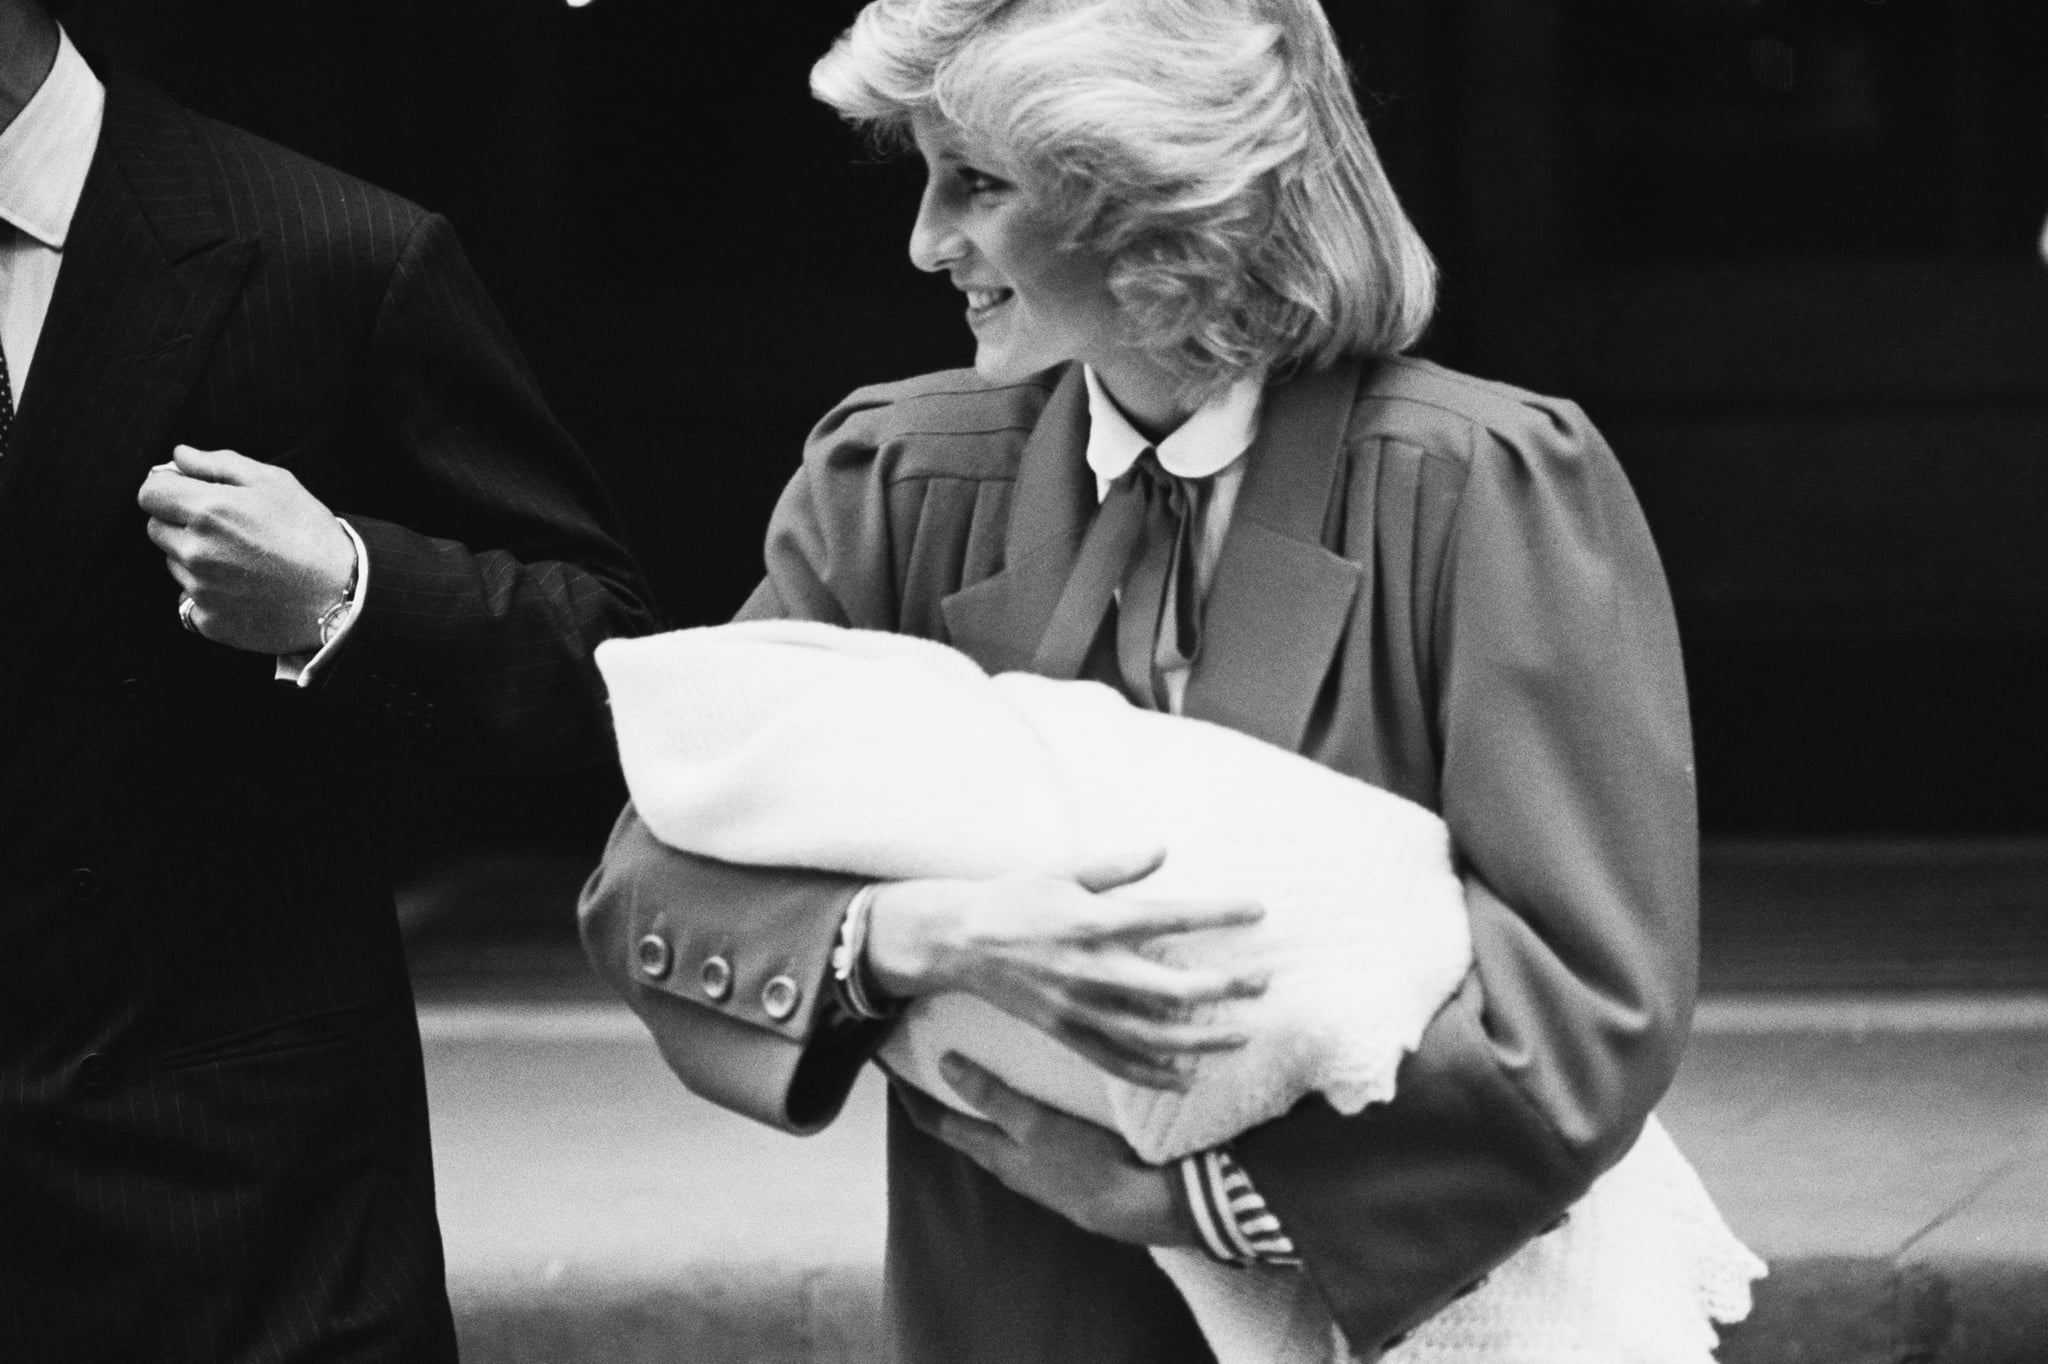 Diana, Princess of Wales (1961-1997) leaves the Lindo Wing of St Mary's Hospital with her son Prince Harry, in Paddington, London, England, 16th September 1984. Harry had been born the previous day. (Photo by K. Butler/Daily Express/Hulton Archive/Getty Images)